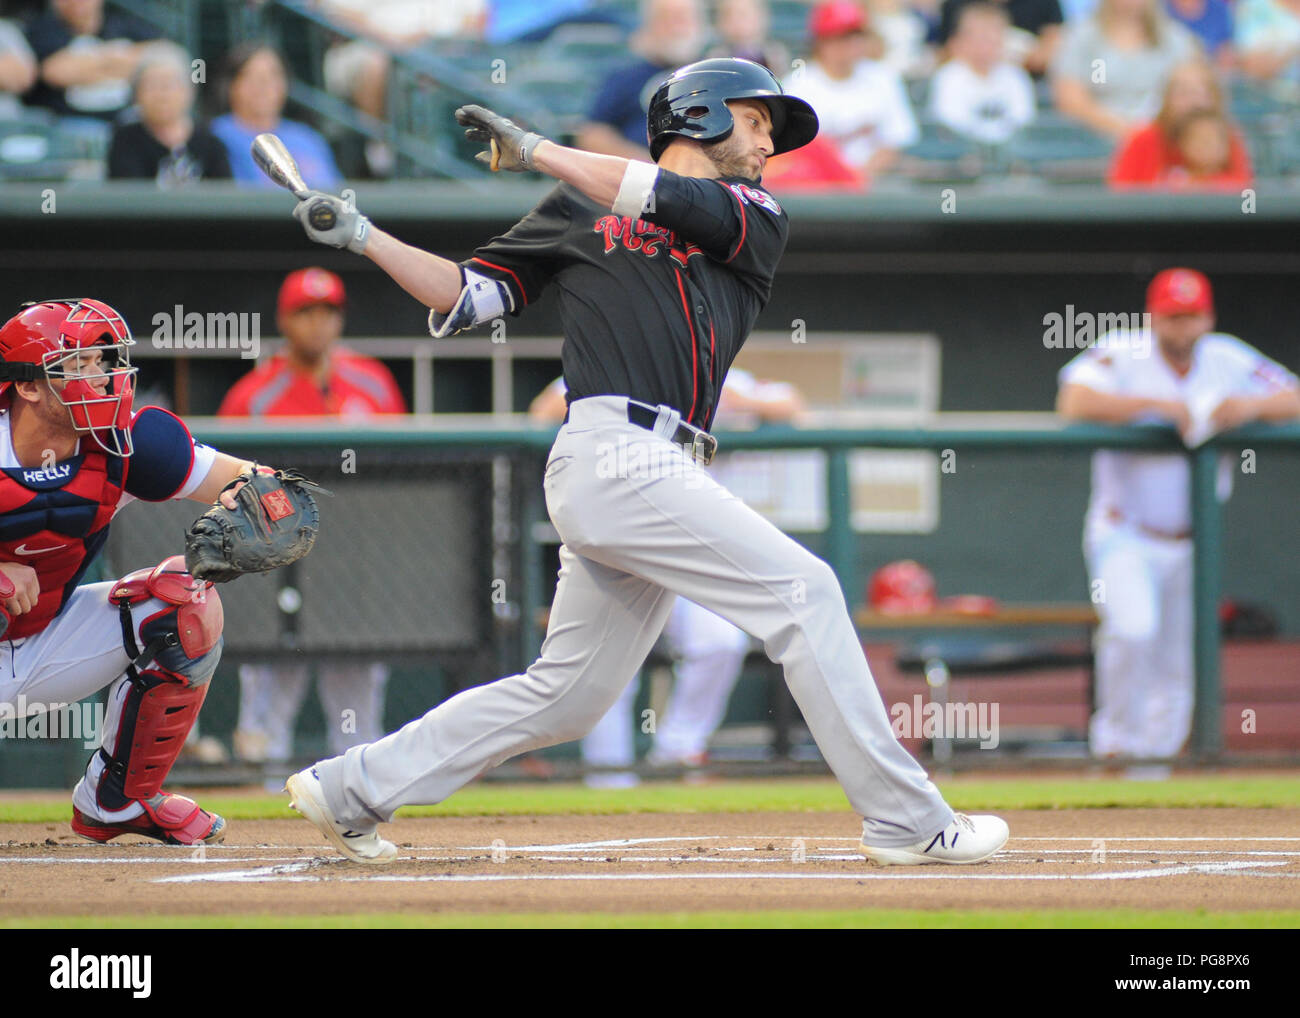 August 24, 2018: Nashville outfielder, Dustin Fowler (7), at bat during the Pacific Coast League Triple-A baseball game at Auto Zone Park in Memphis, TN. Memphis defeated Nashville, 9-3. Kevin Langley/CSM - Stock Image